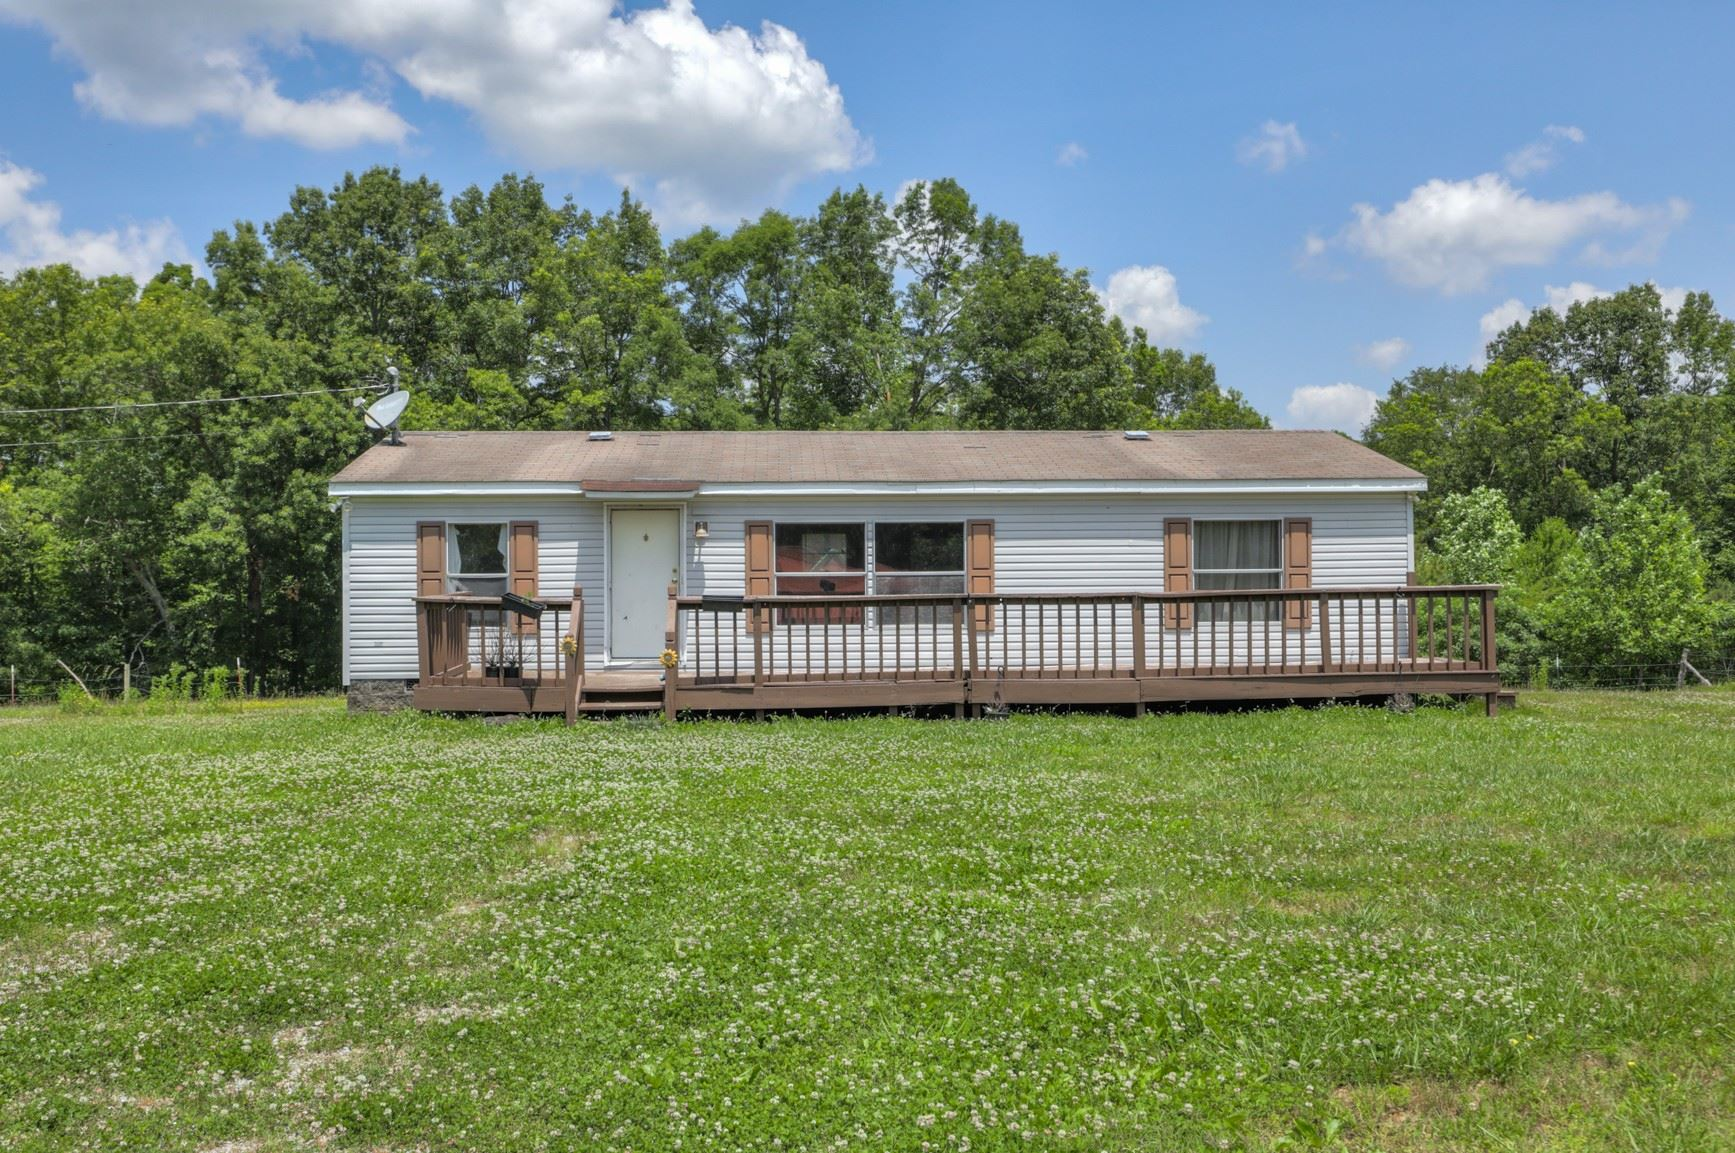 Photo of 7040 M and M Road, Lyles, TN 37098 (MLS # 2156321)